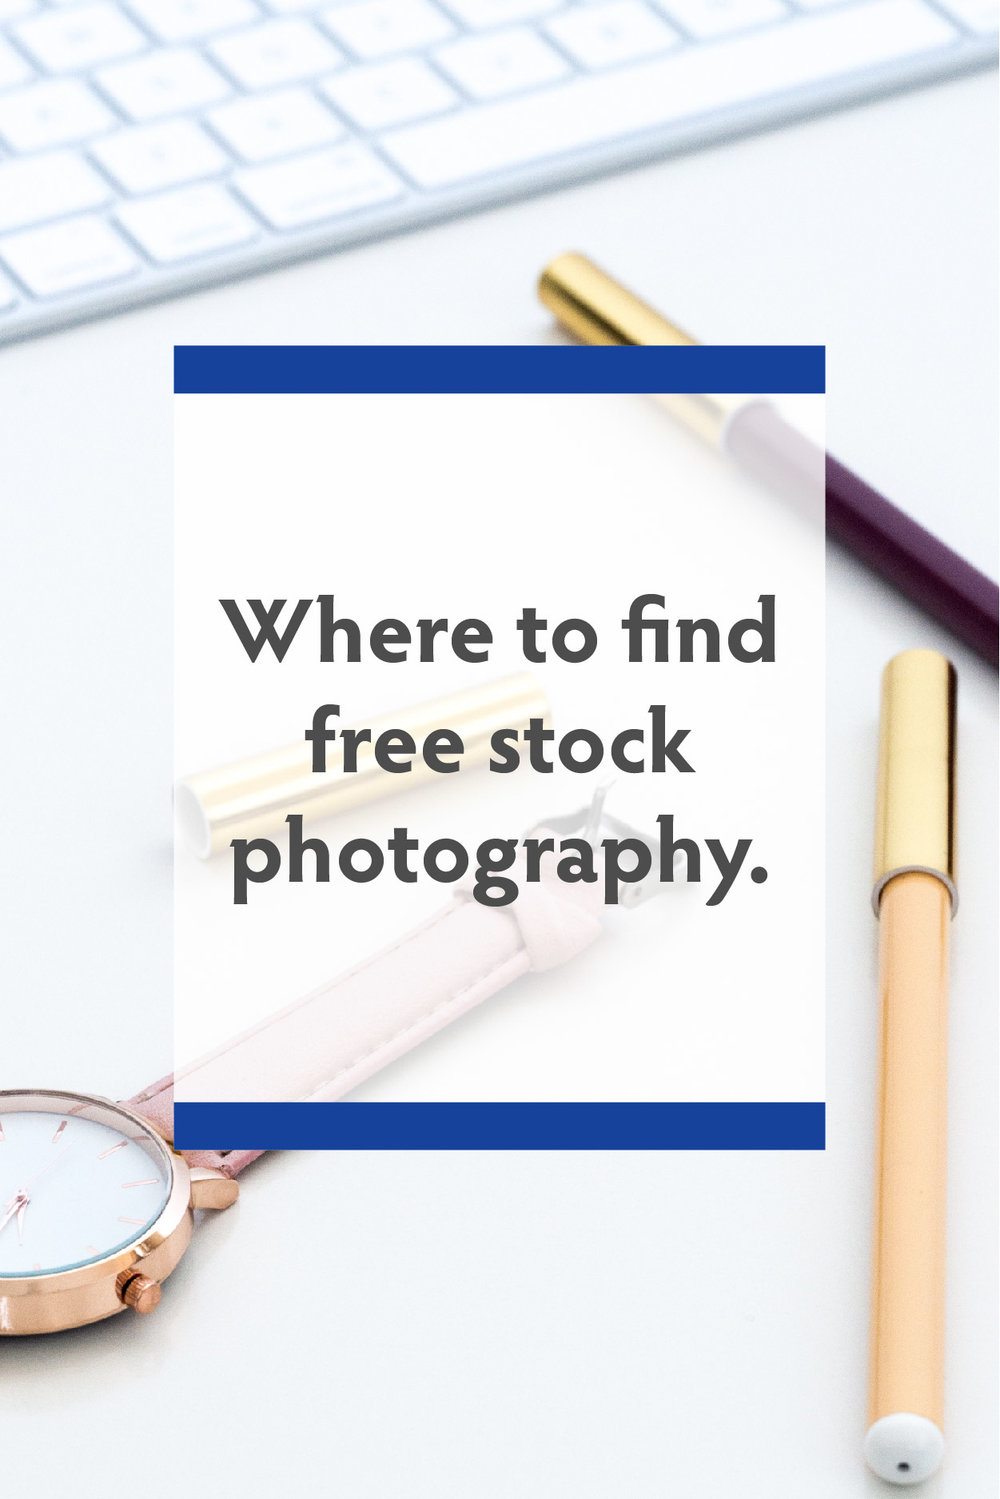 where to find free stock photography.jpg